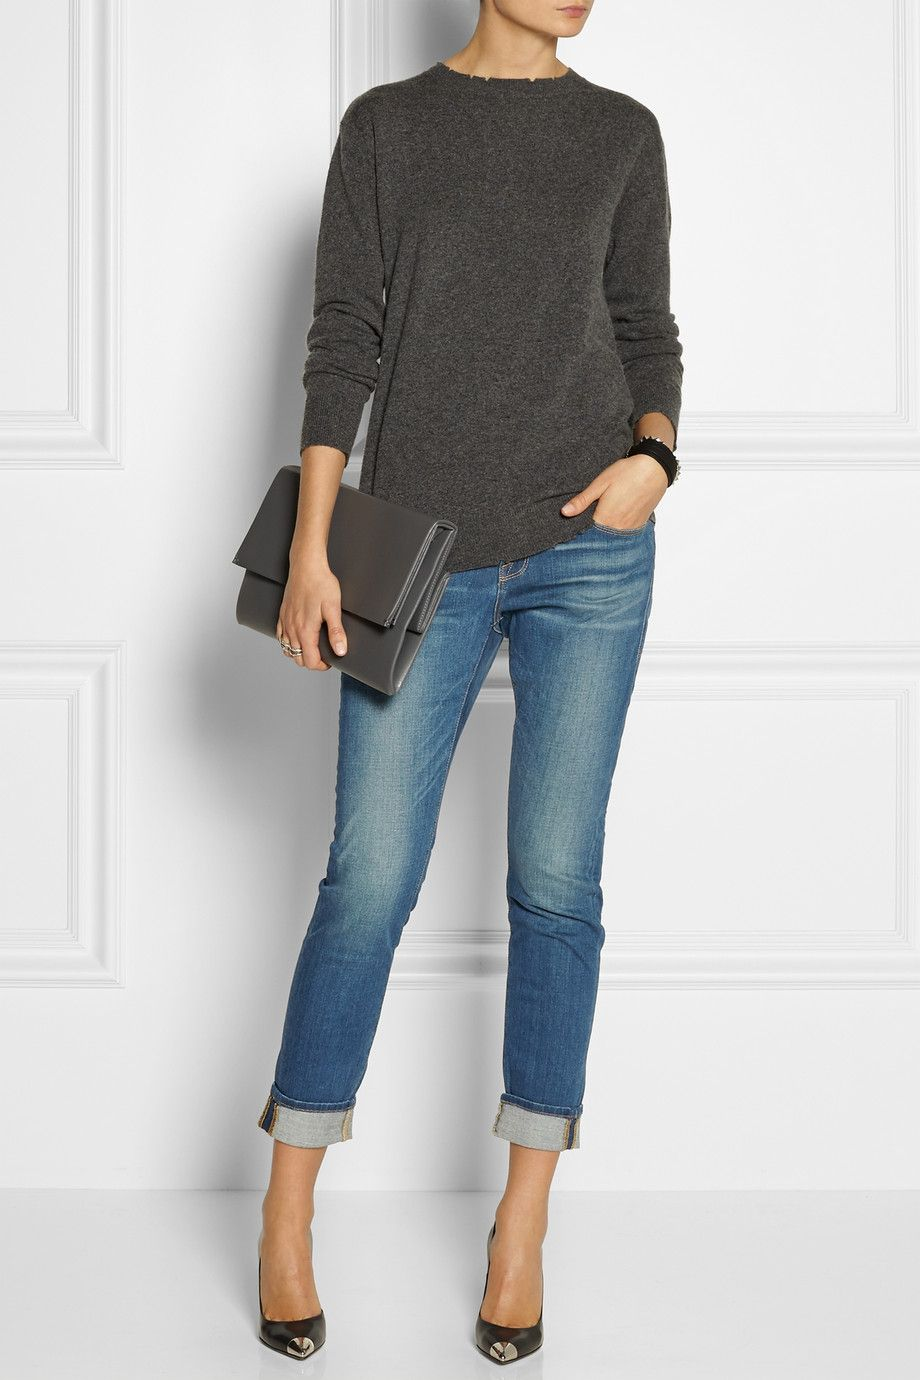 Grey Sweater With Rolled Up Cuff Jeans Paired With Black